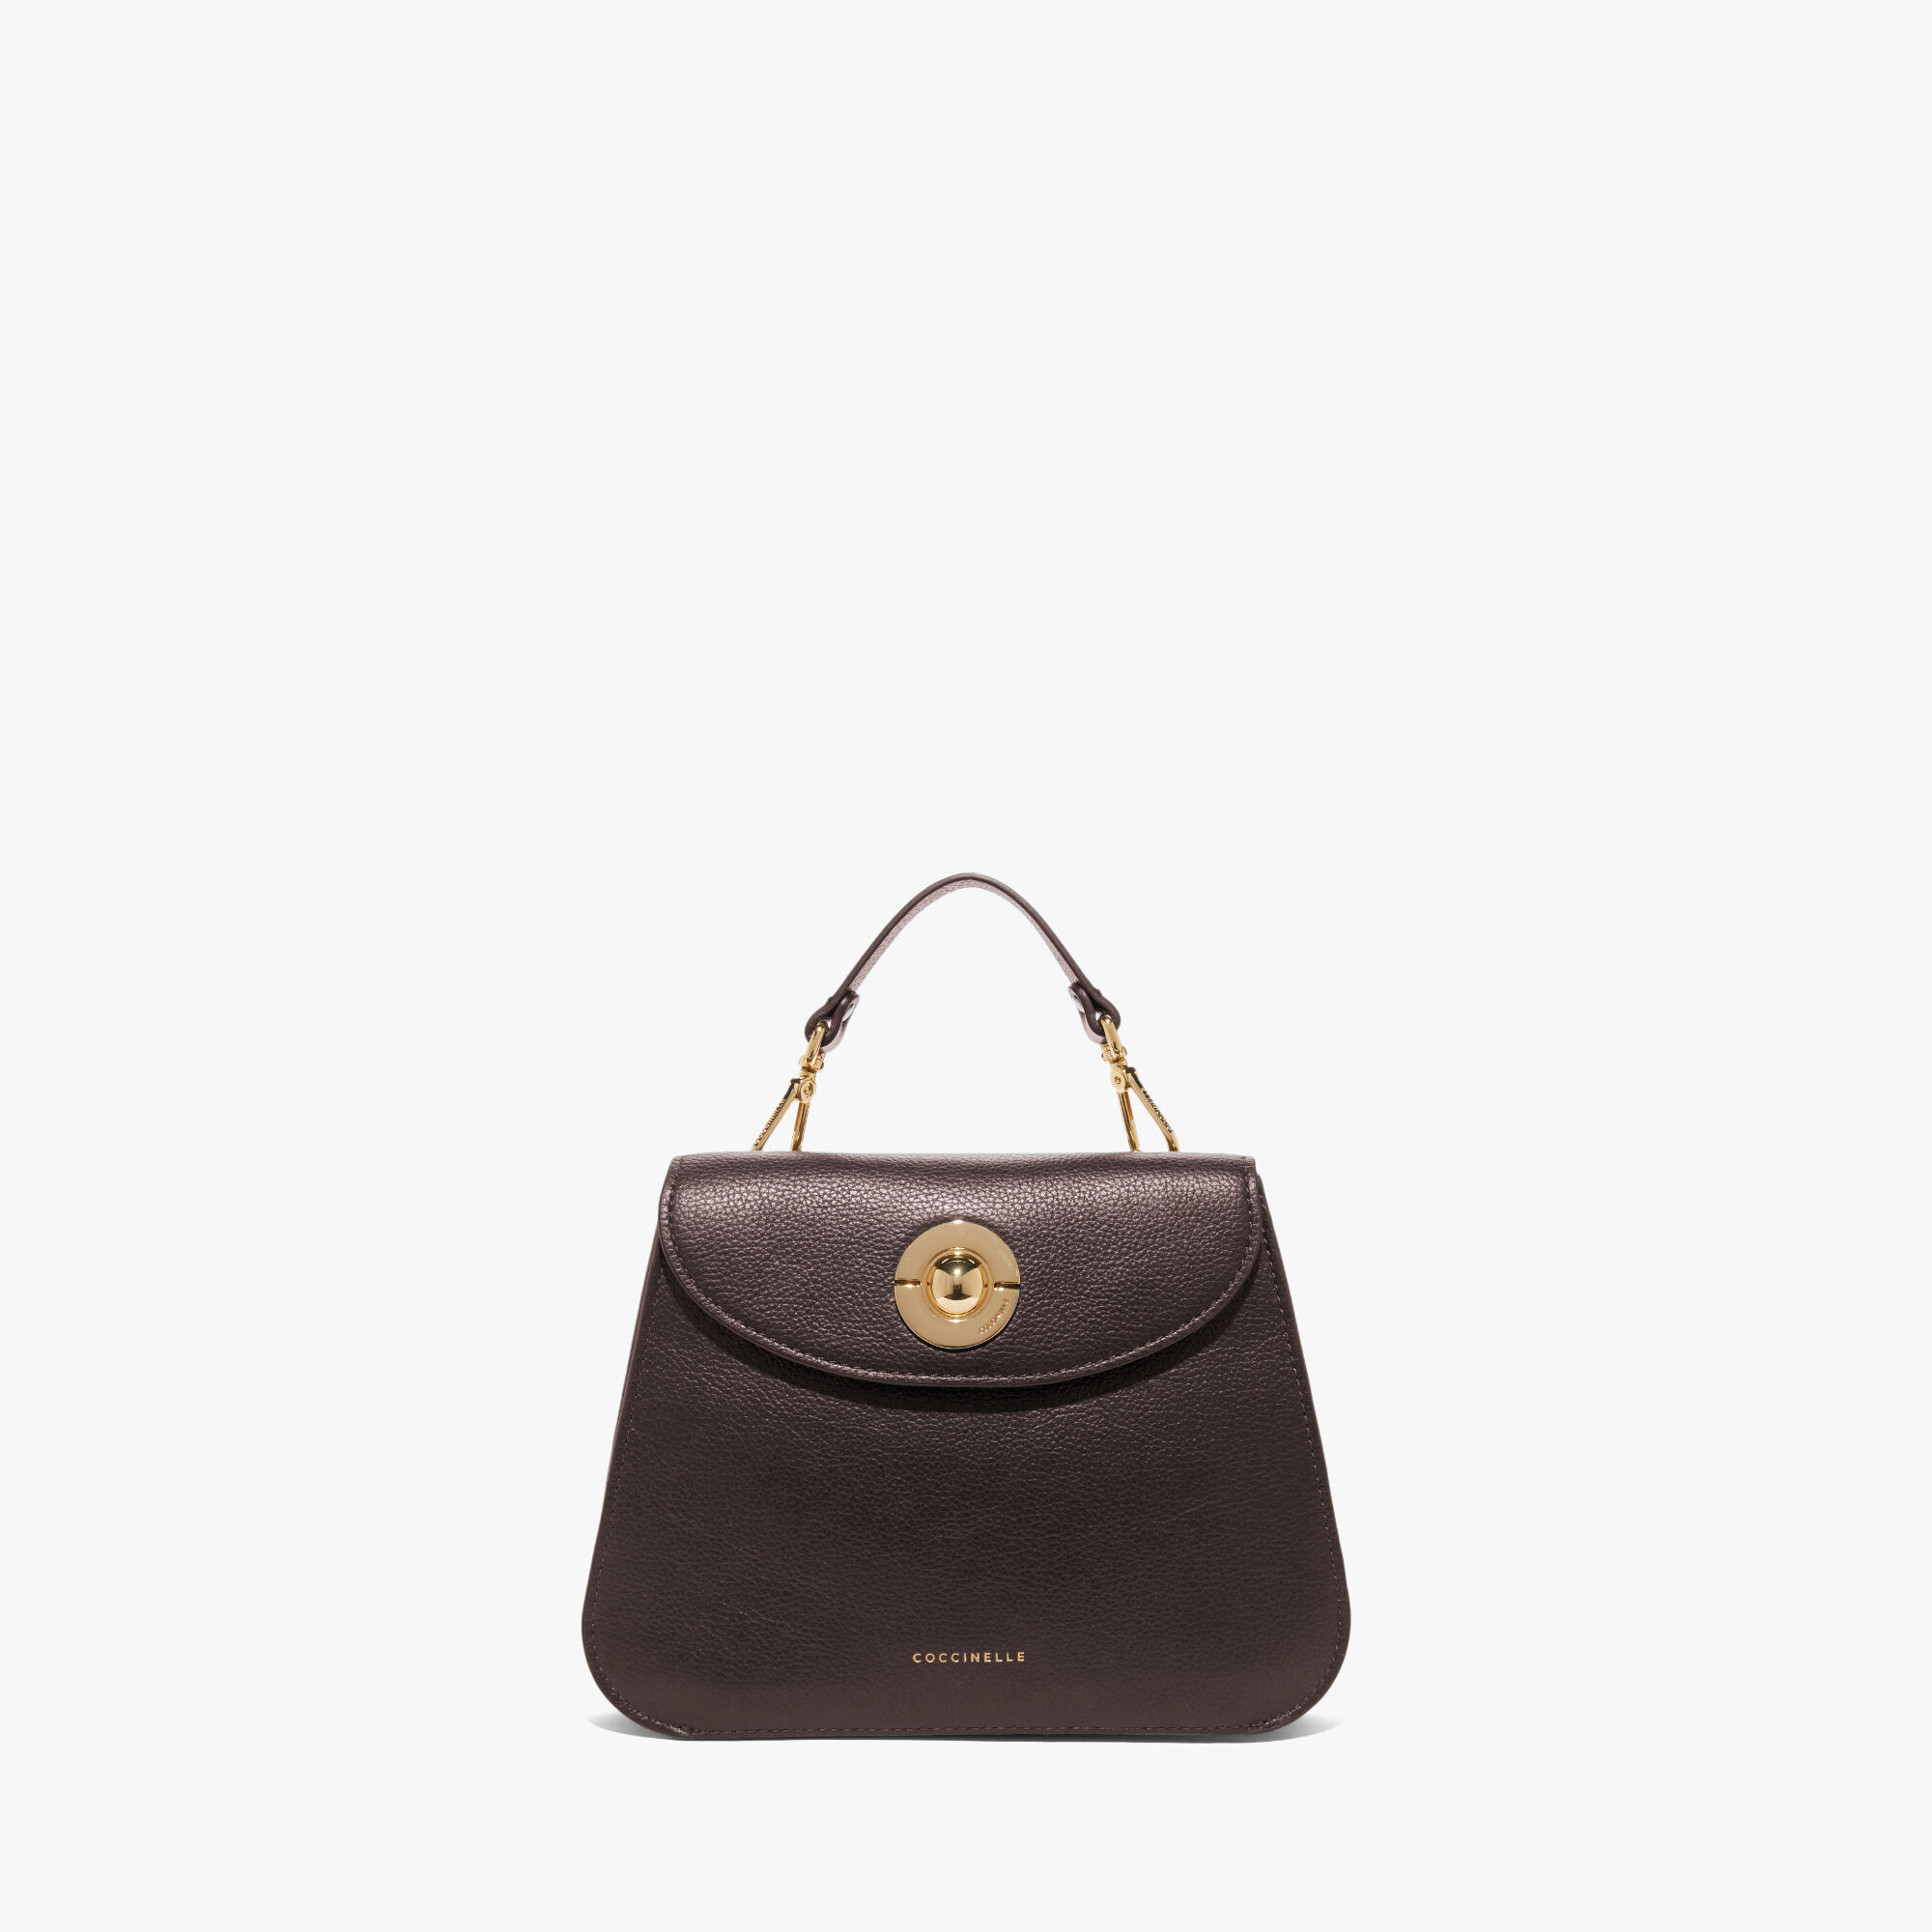 Bags All | Coccinelle